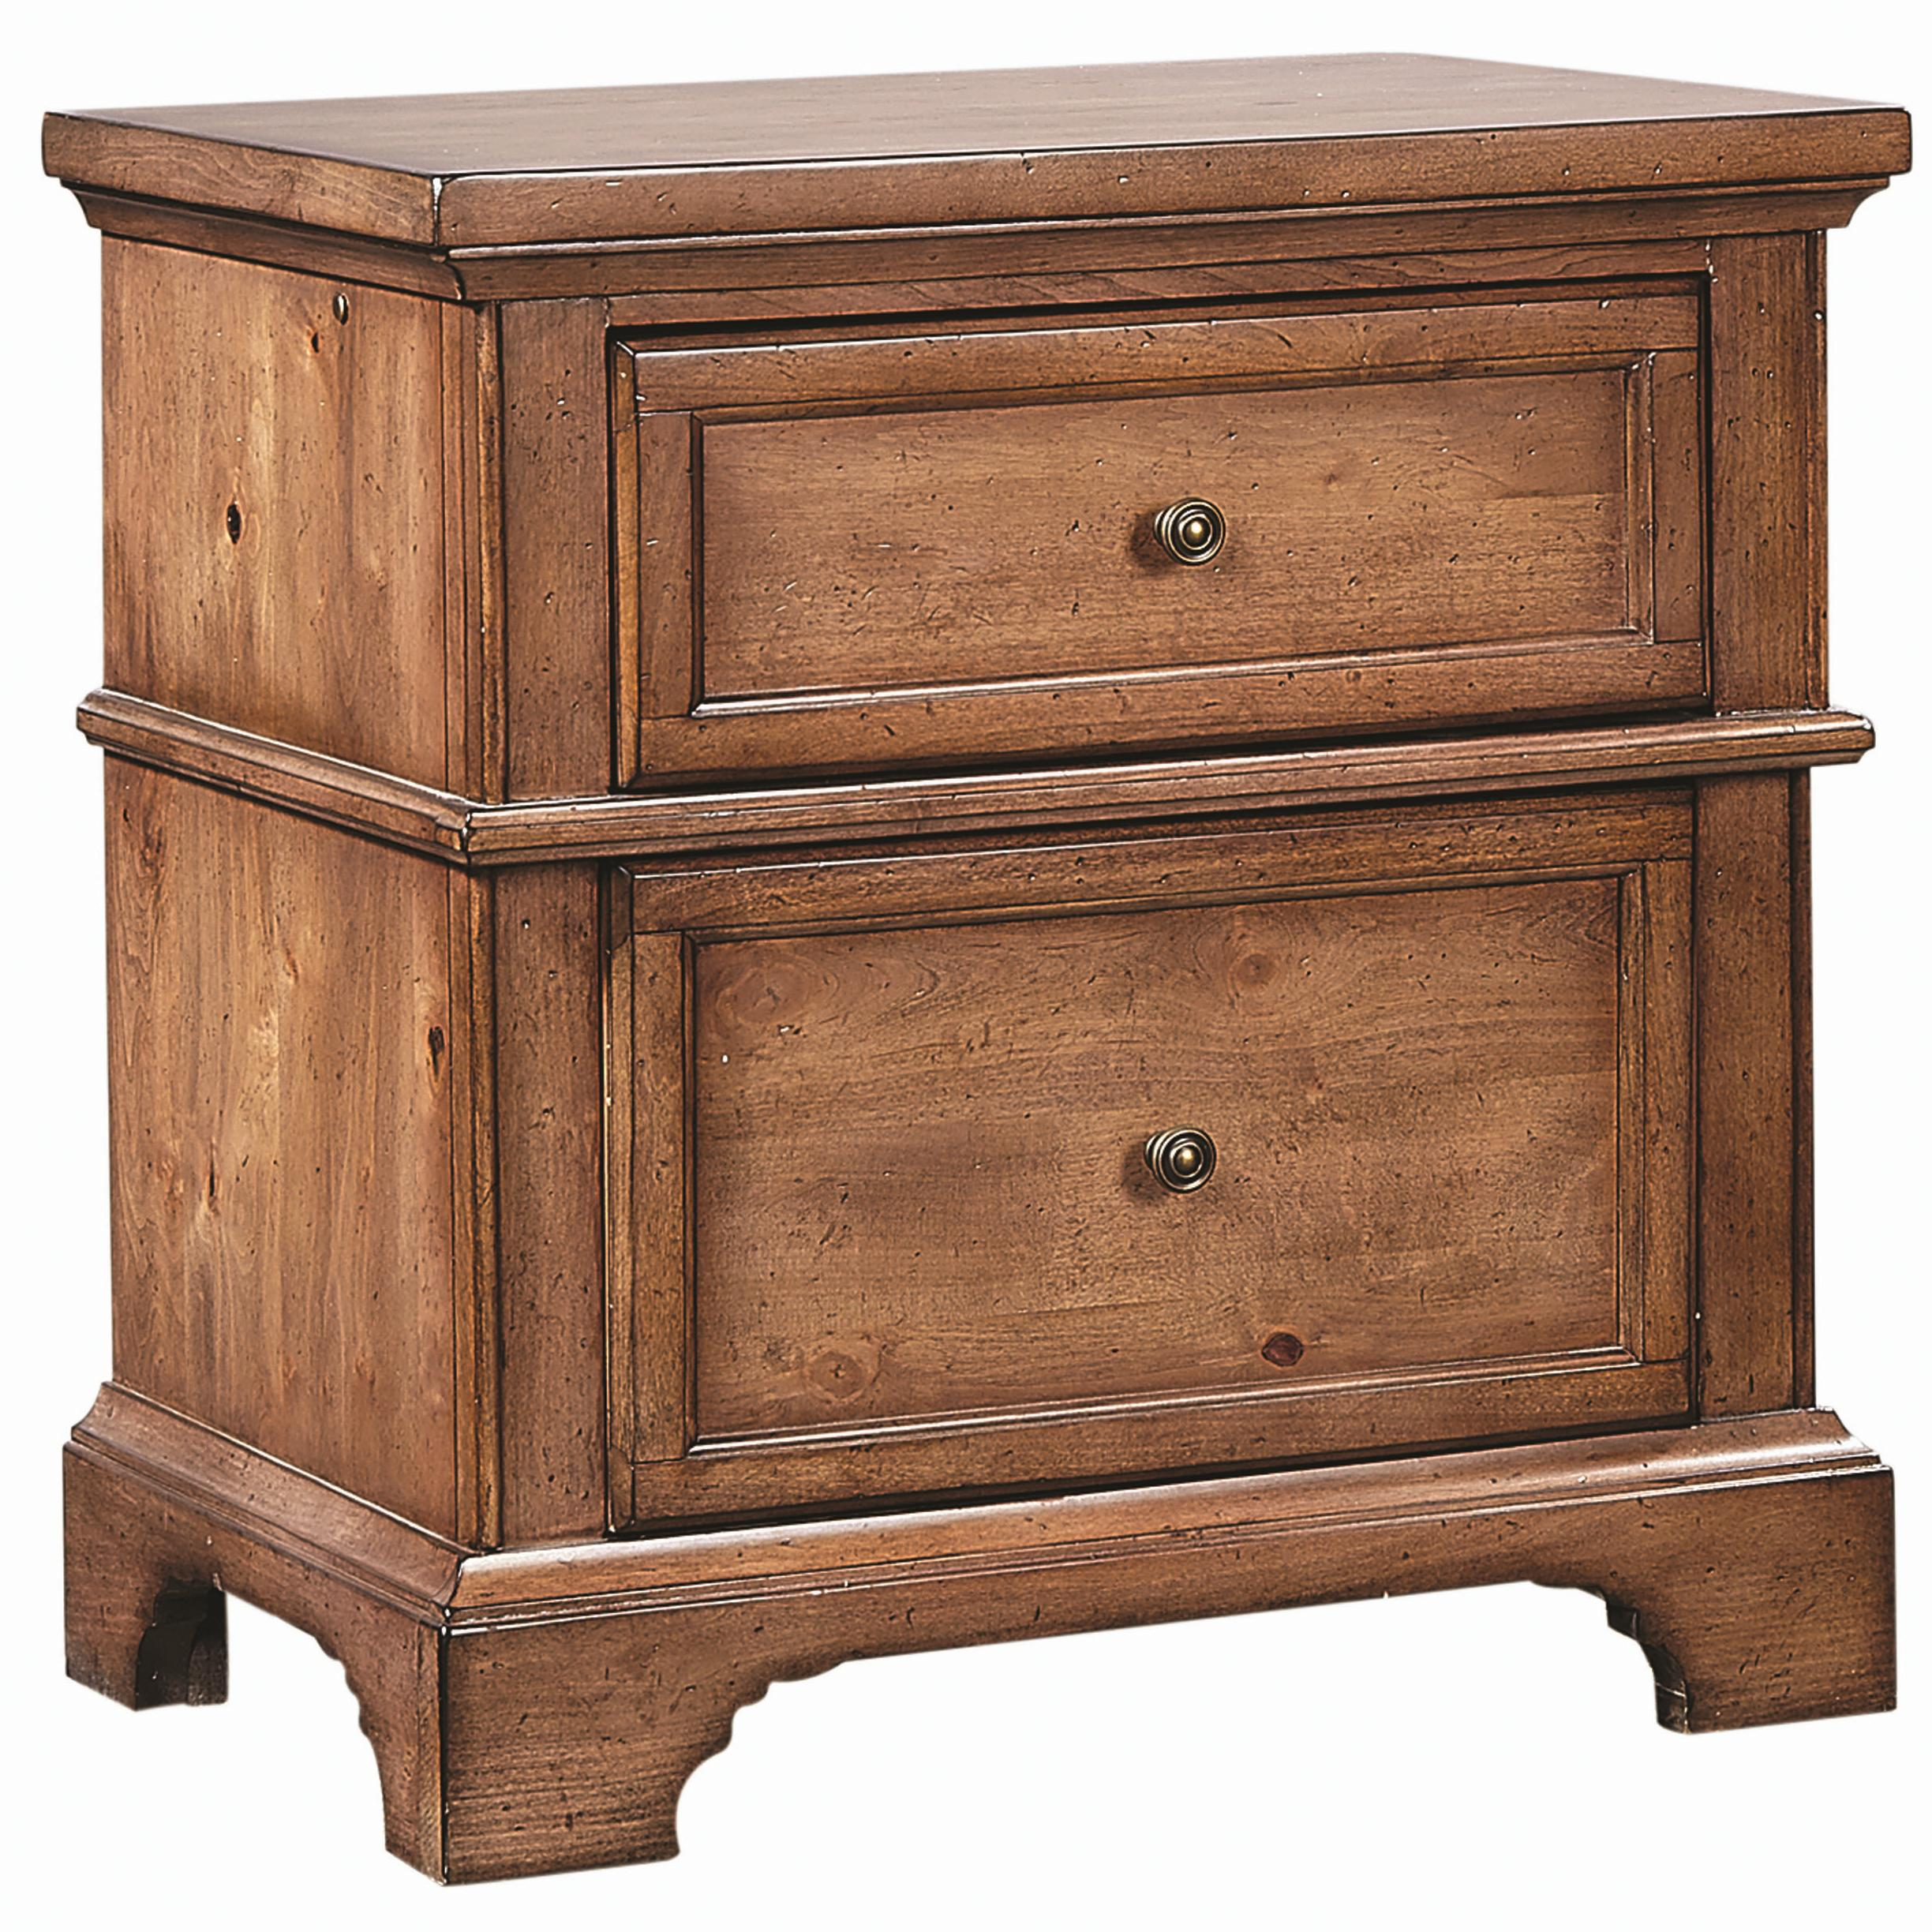 Alder Creek Liv360 Nightstand by Aspenhome at Virginia Furniture Market